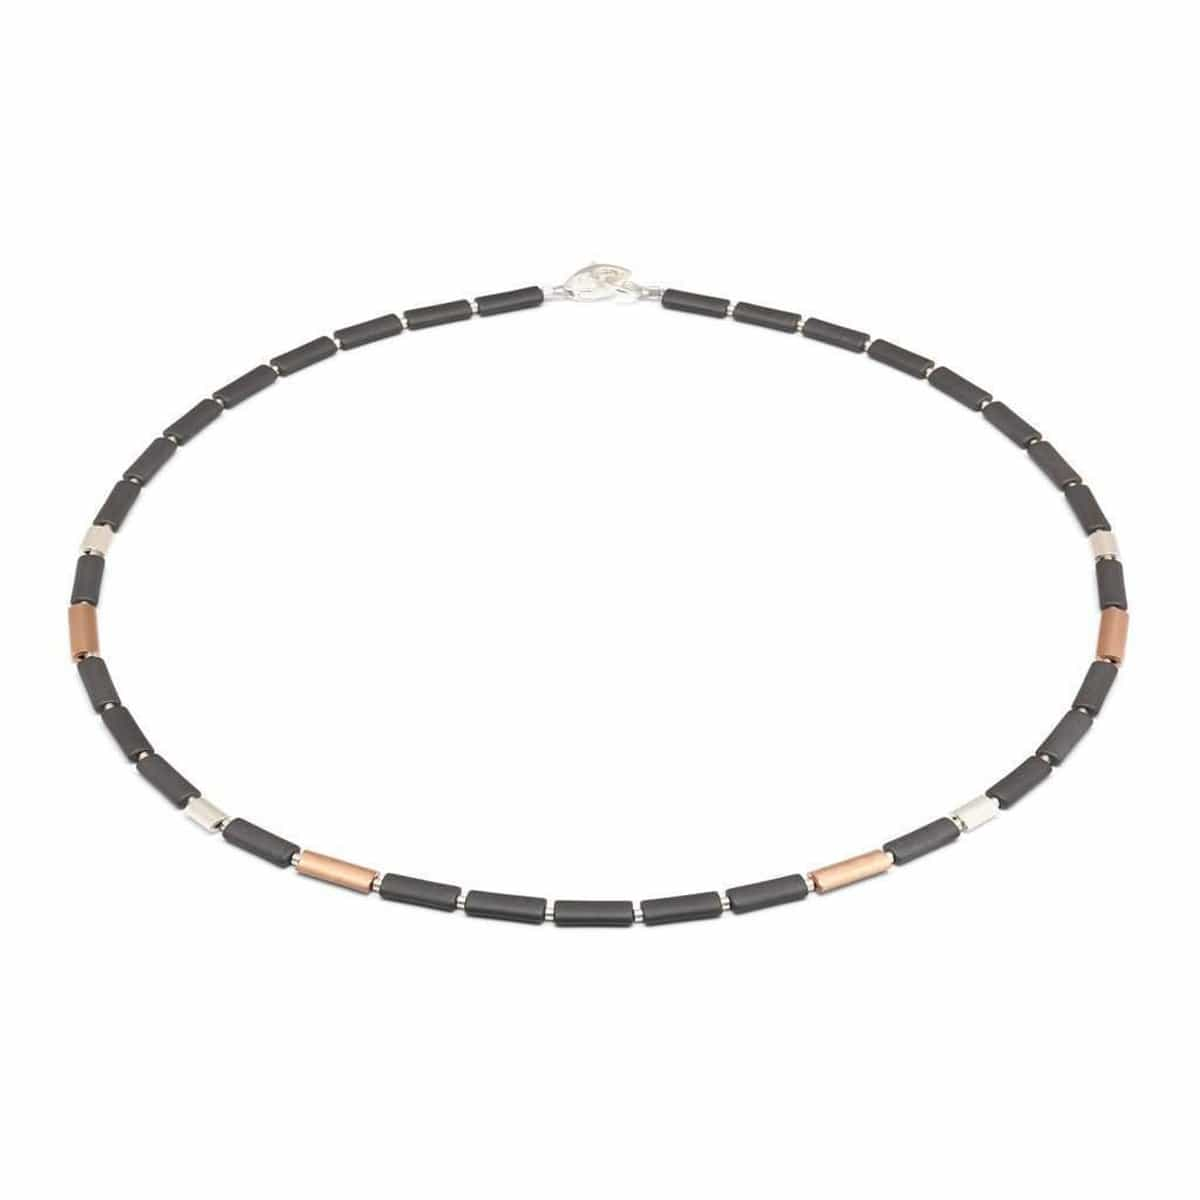 Ovalsa Hematine Necklace - 85738275-Bernd Wolf-Renee Taylor Gallery